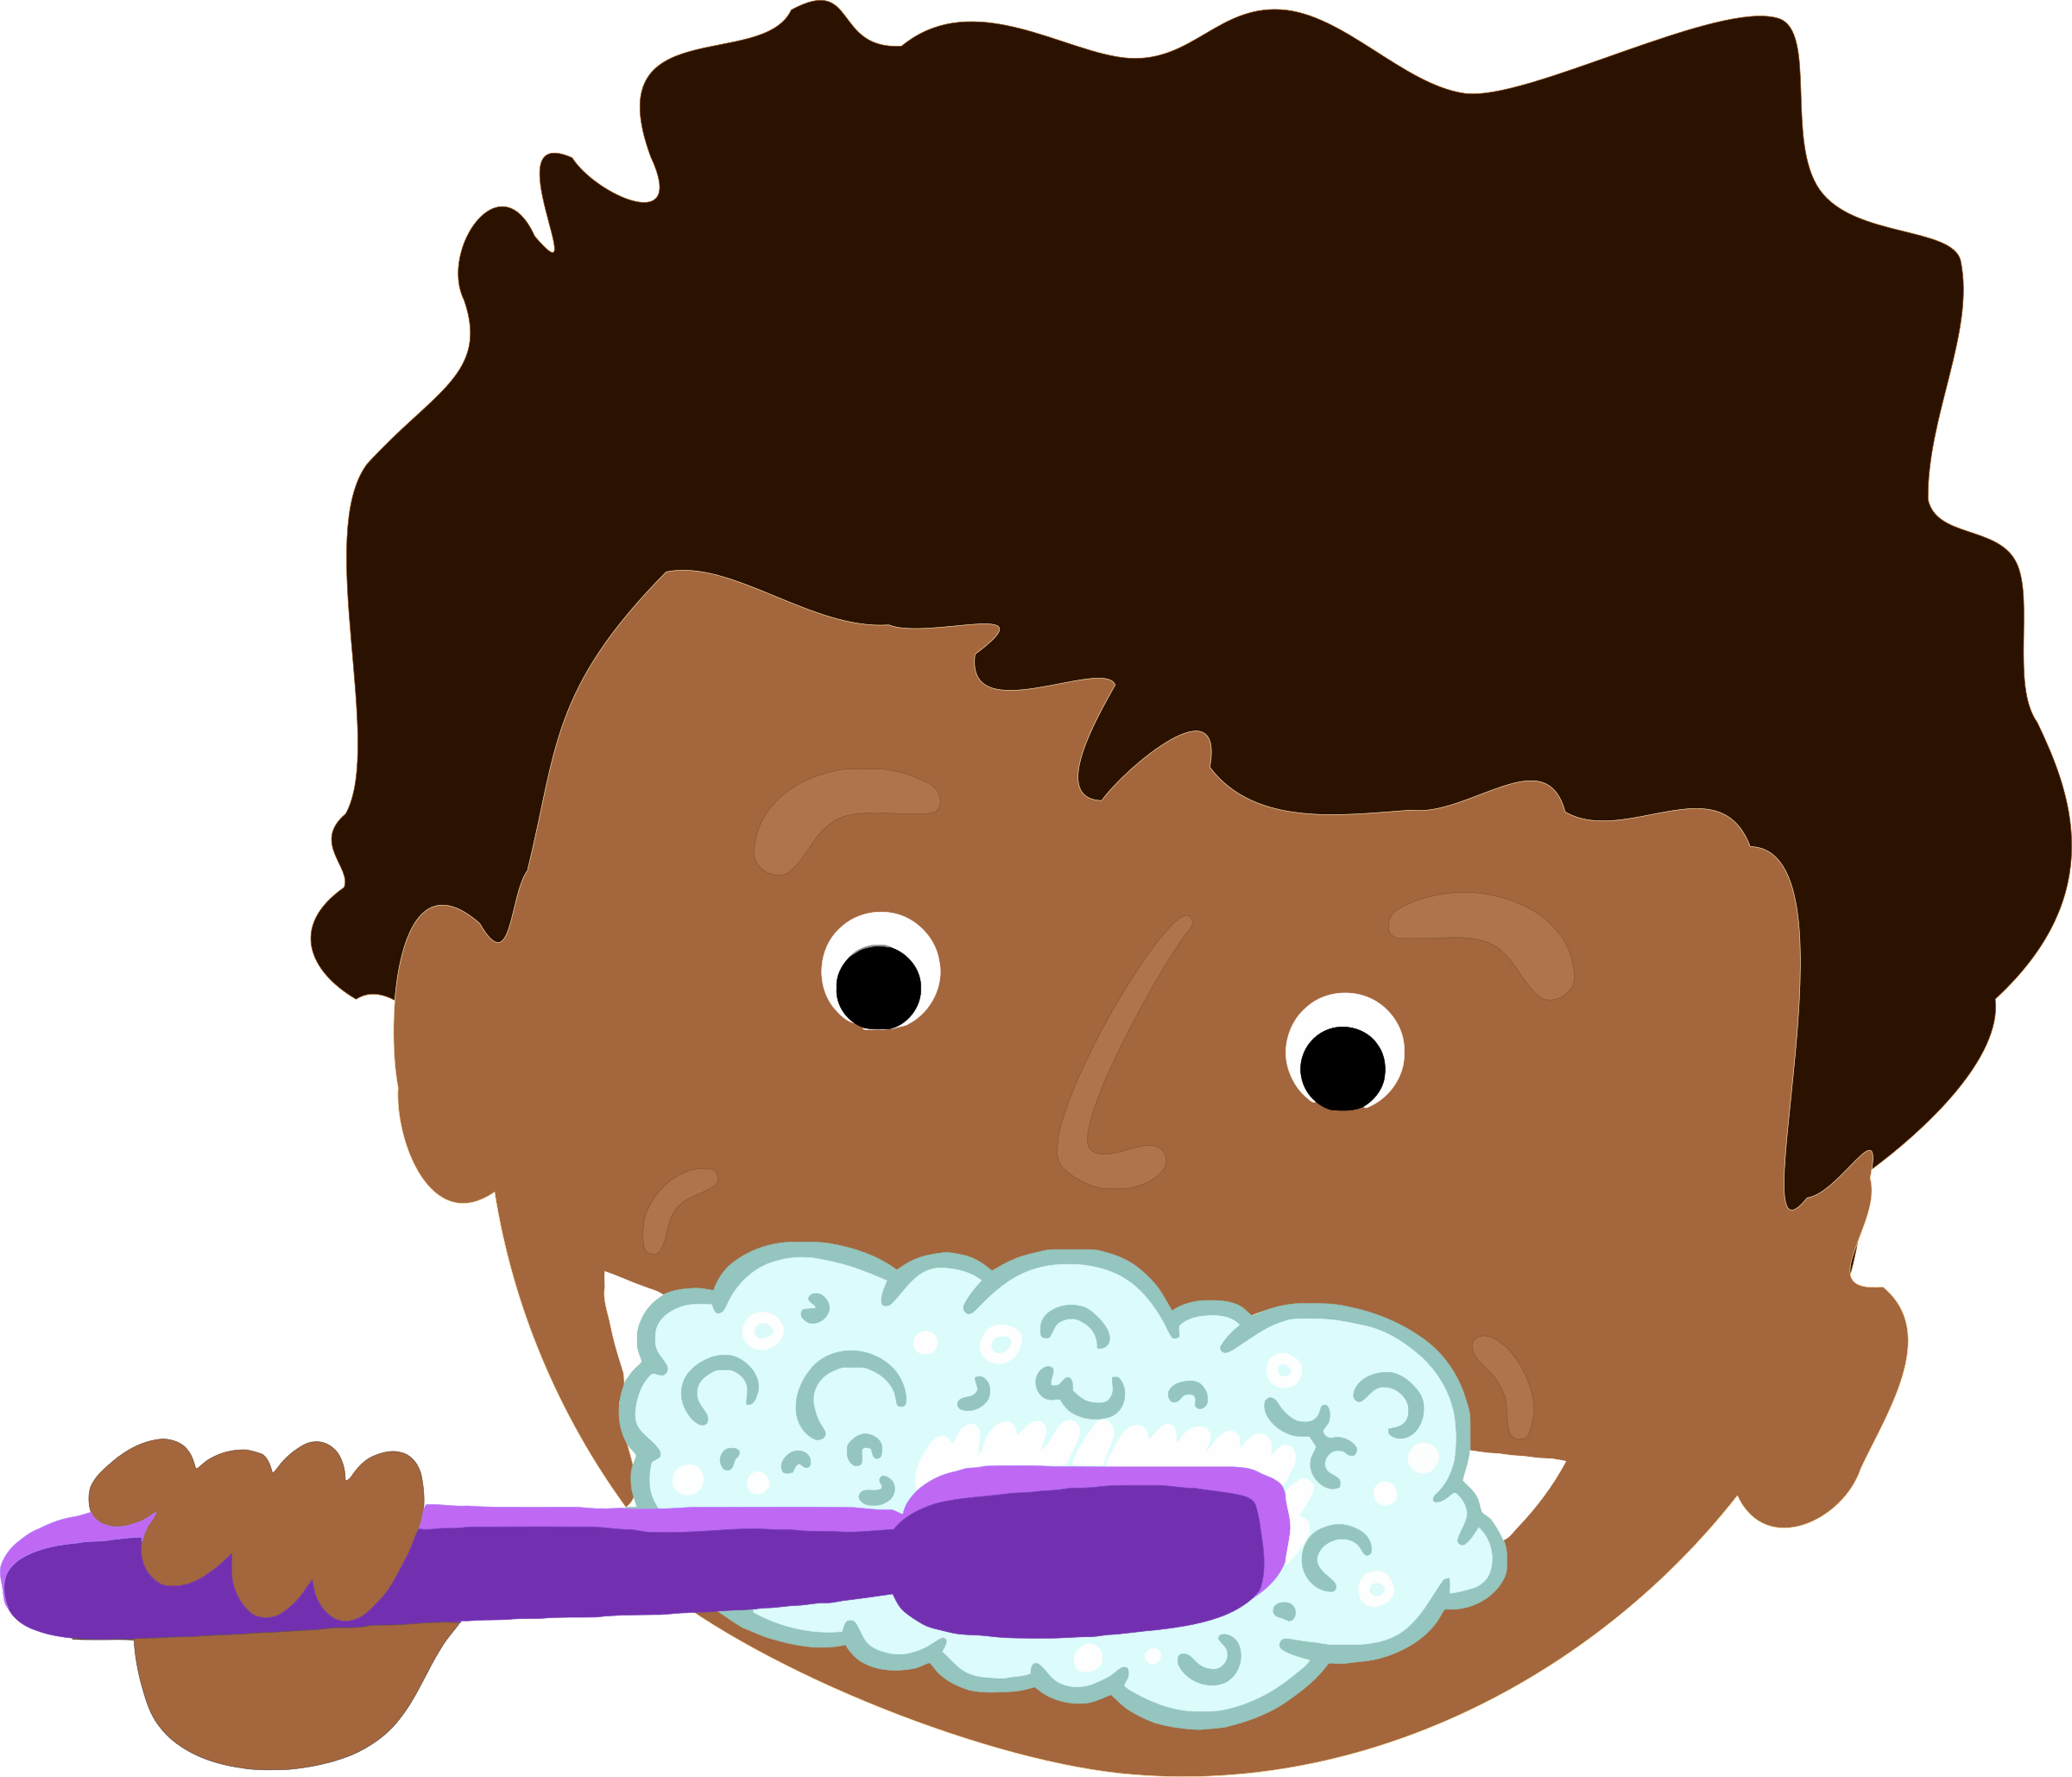 African kid brushing teeth. Mouth clipart brush